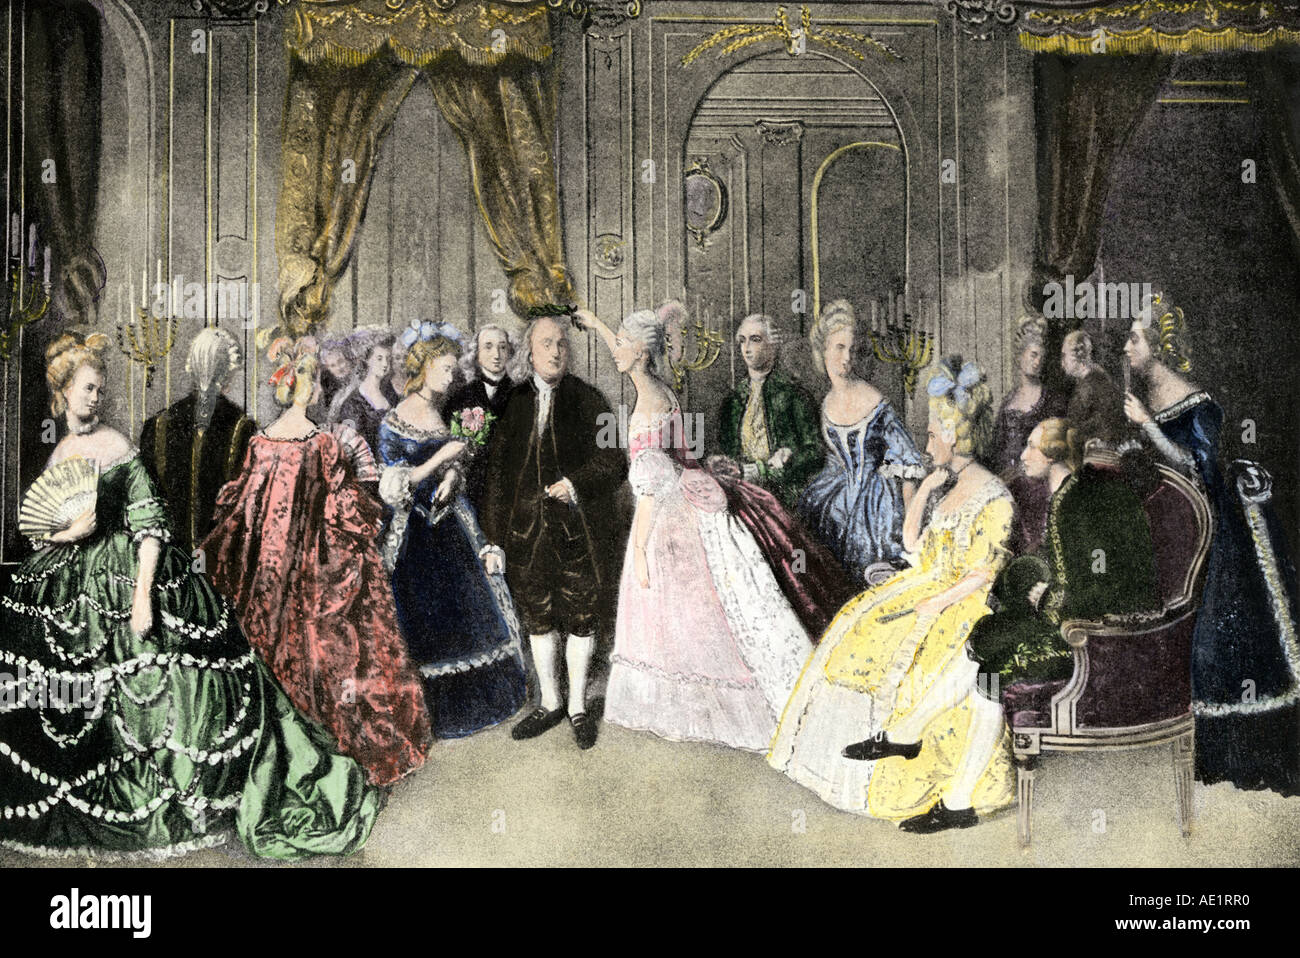 Benjamin Franklin representing the American cause at the royal court of French King Louis XVI. Hand-colored halftone of an illustration - Stock Image